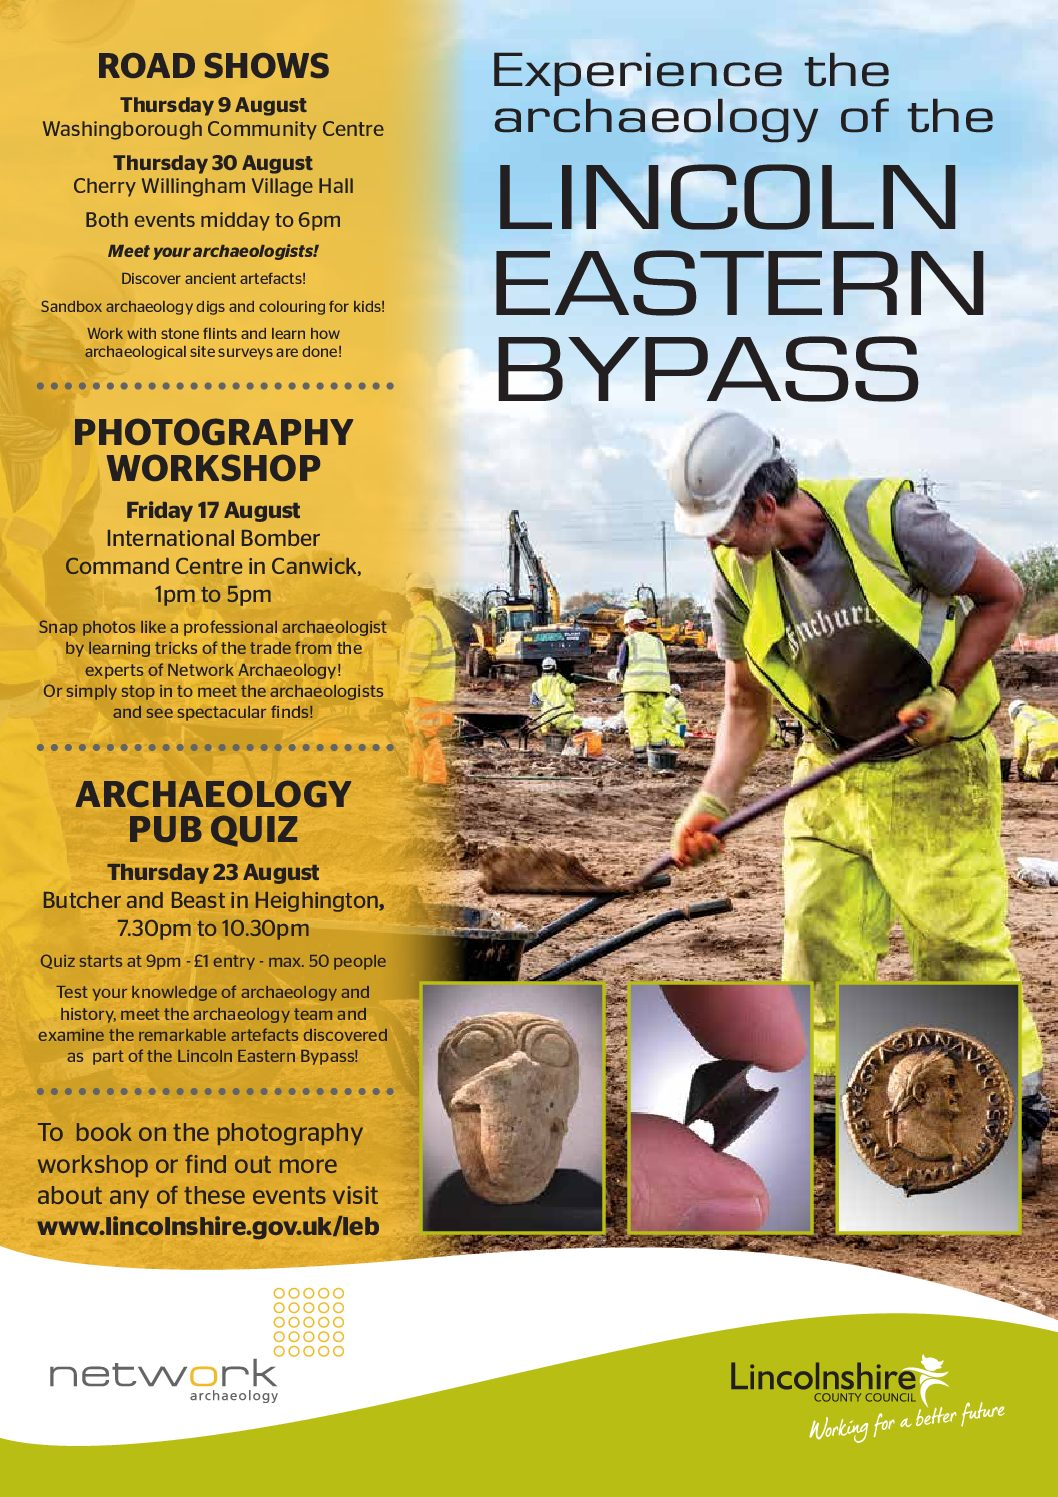 Lincoln Eastern Bypass Archaeology goes on tour!